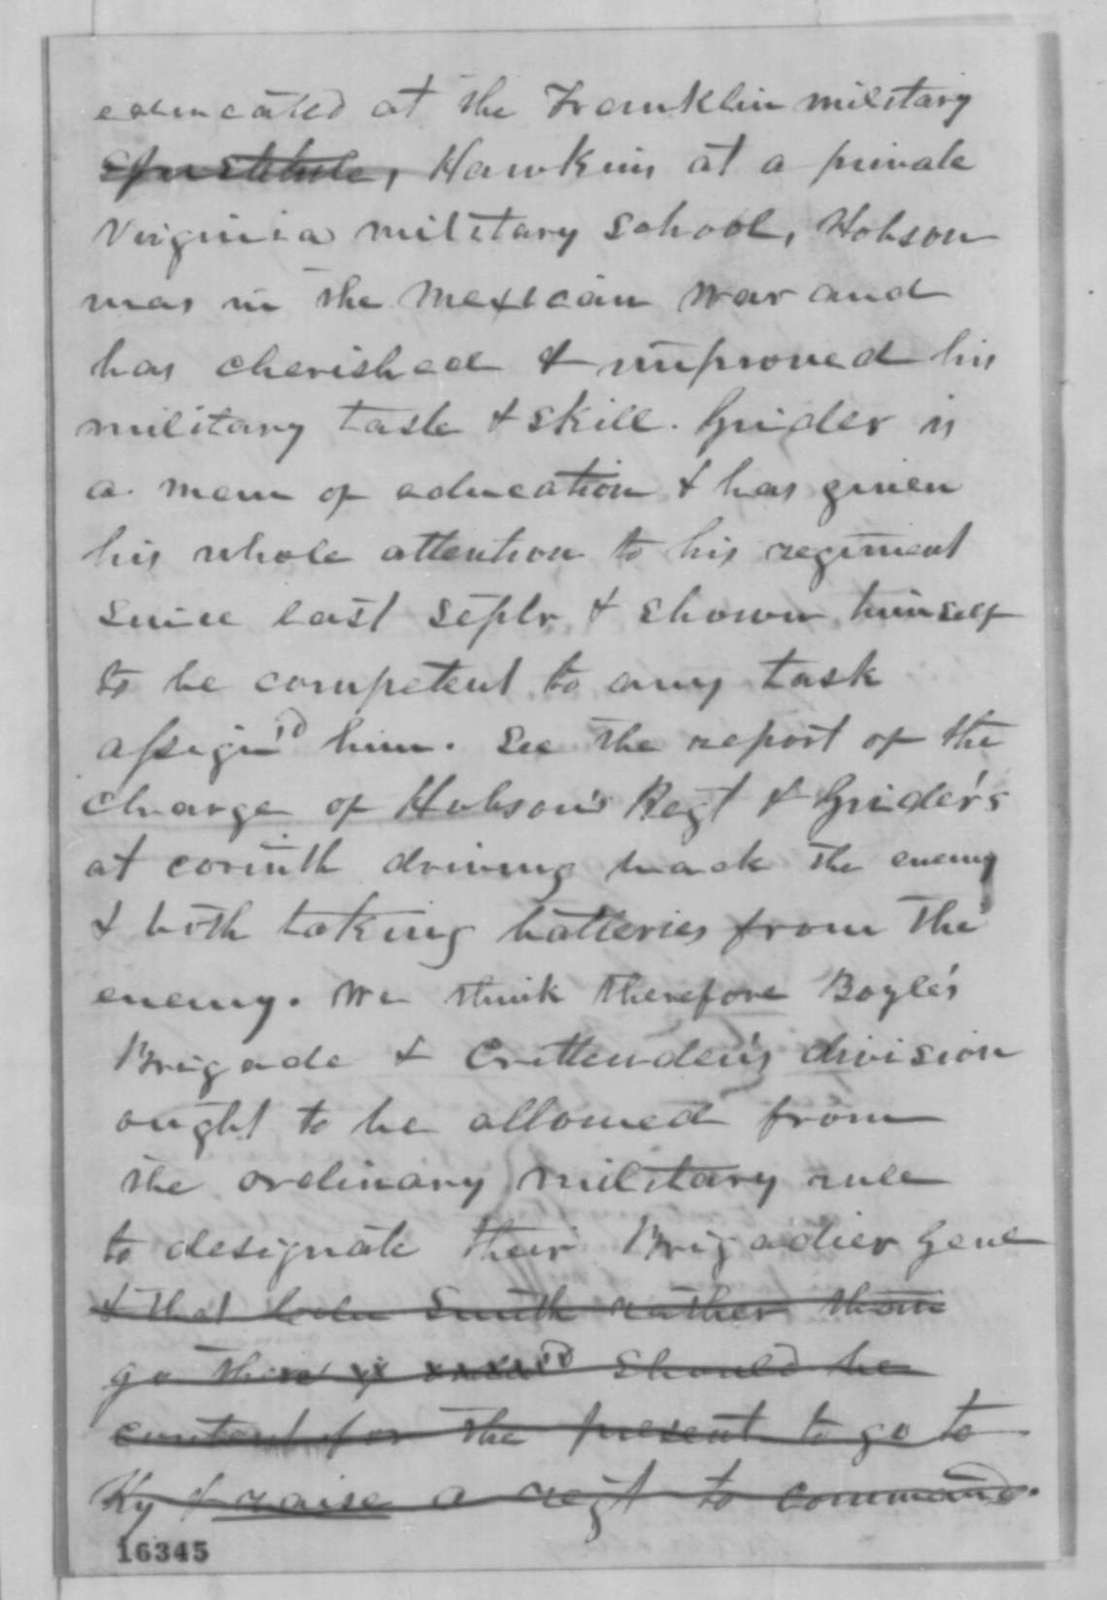 """Aaron Harding, et al."" to Abraham Lincoln, Friday, June 06, 1862  (Petition recommending promotion of Col. Smith)"